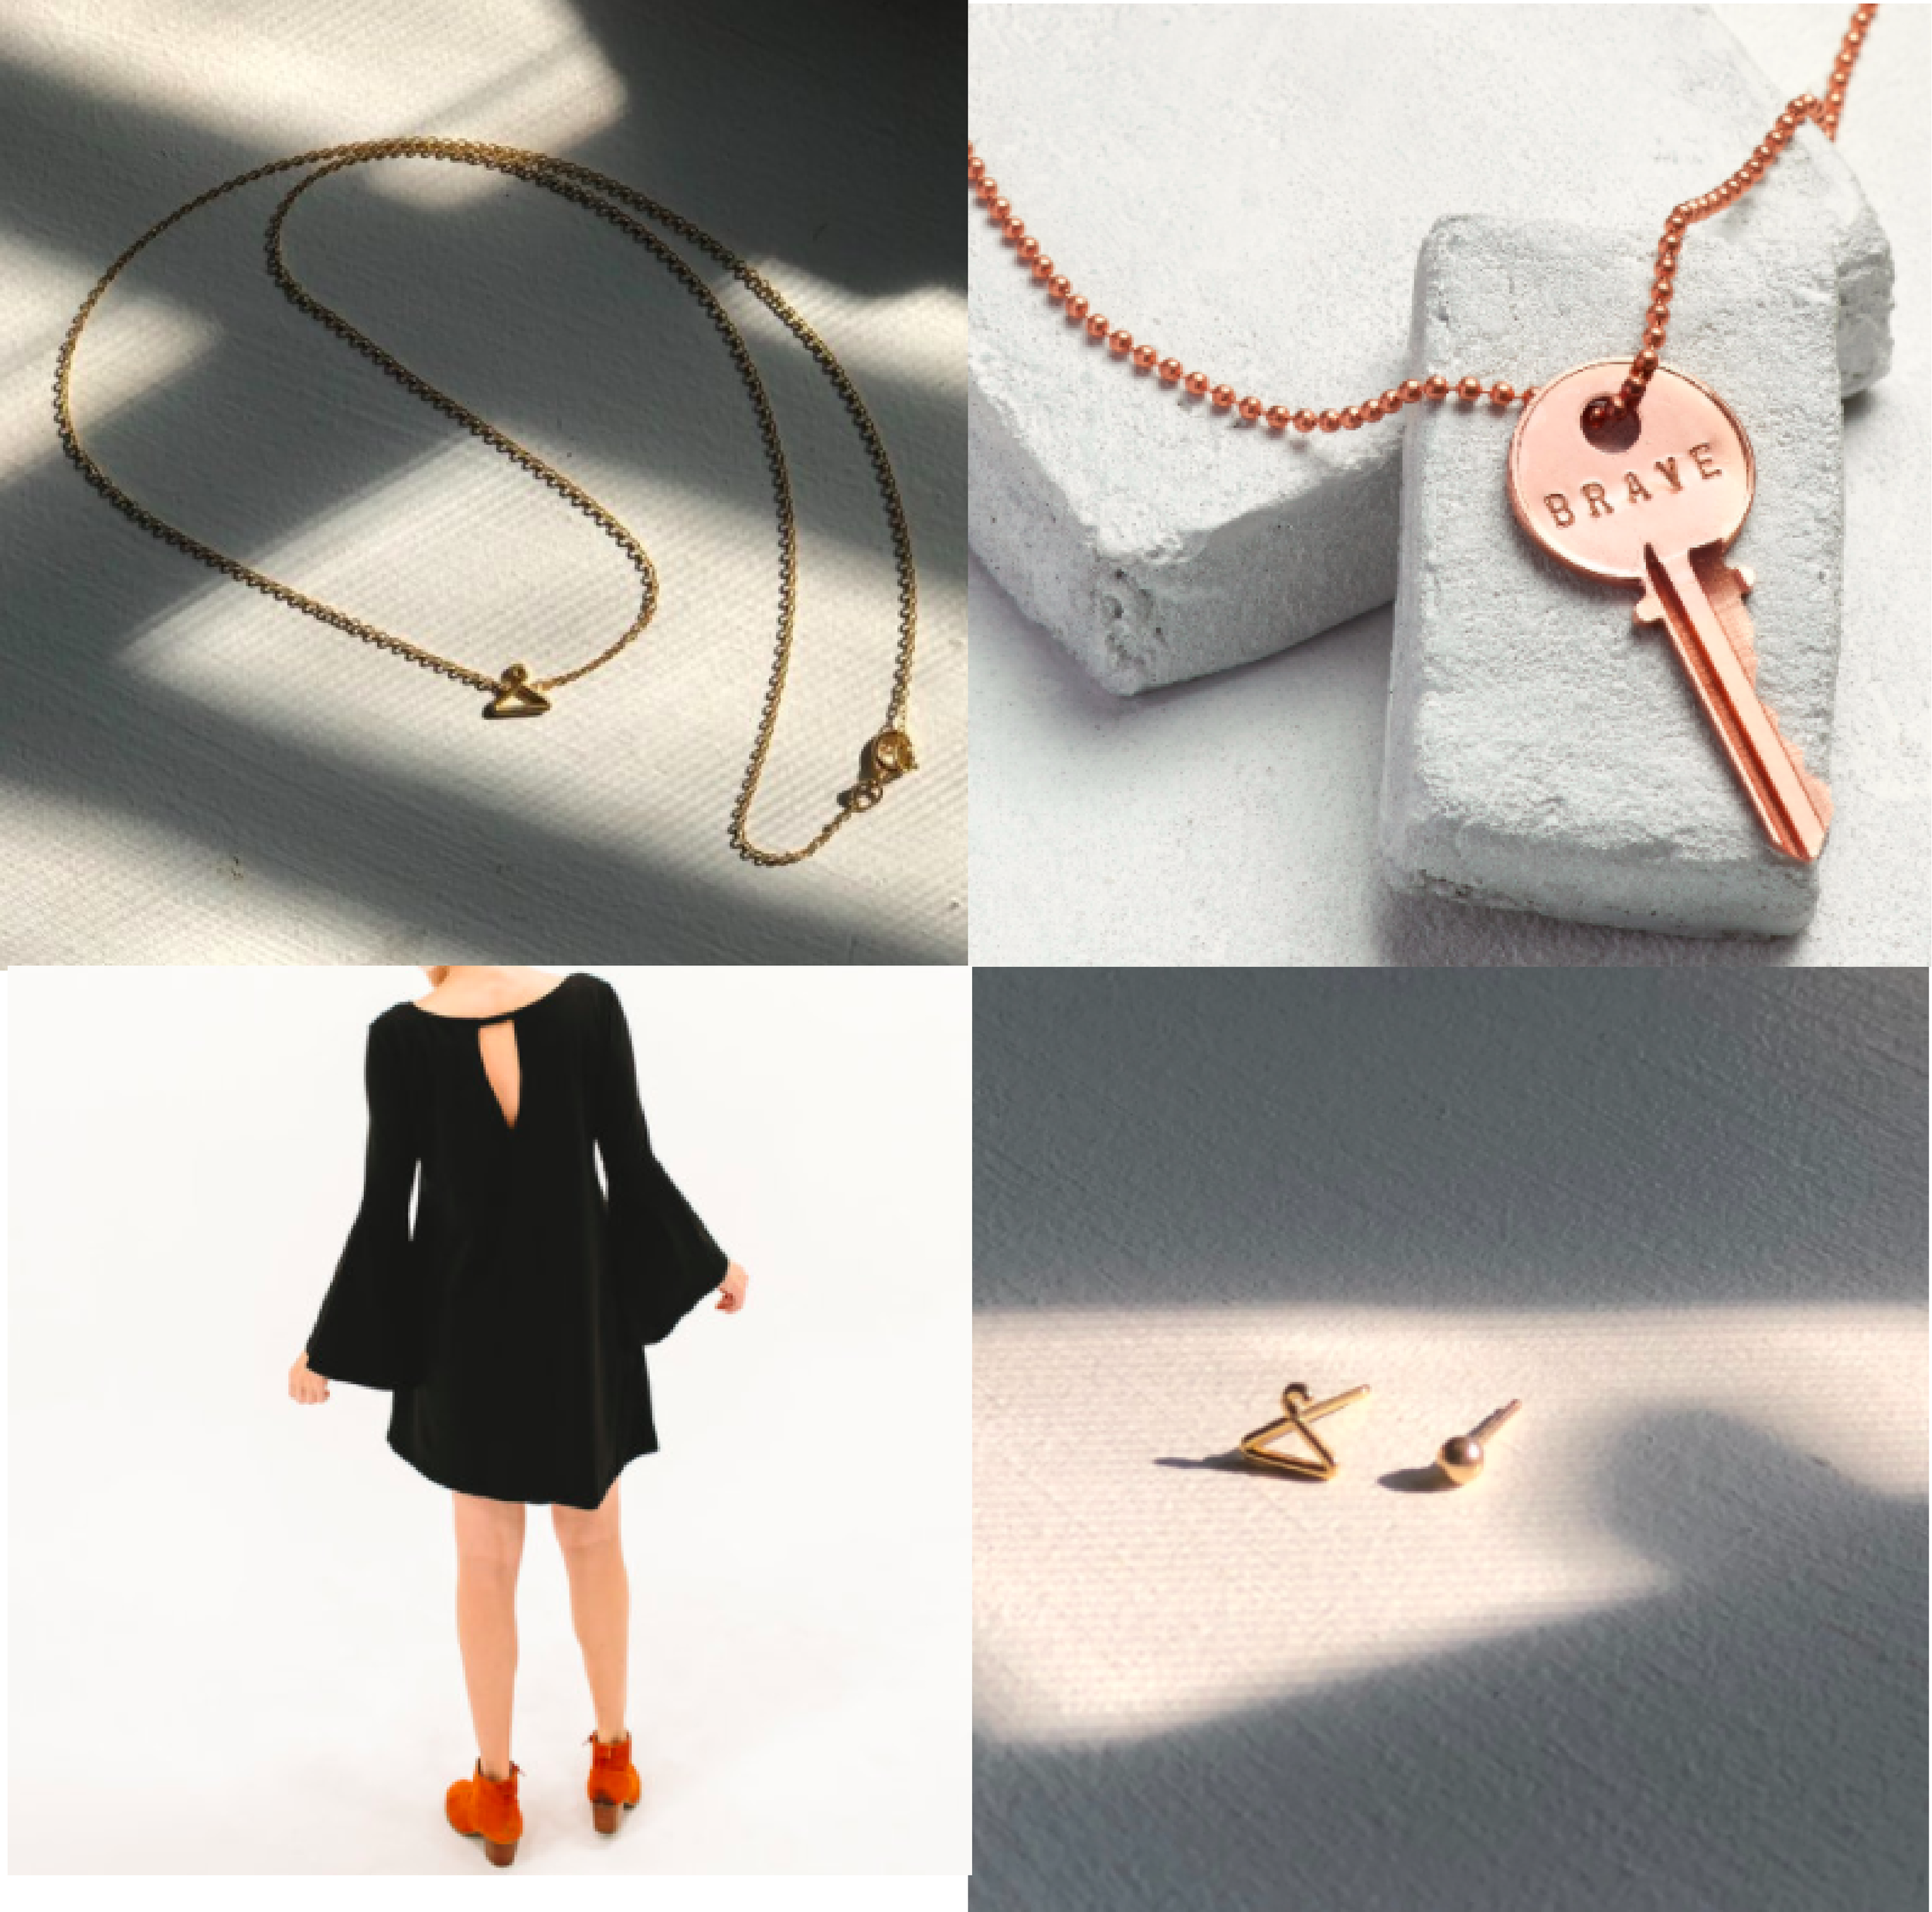 Every advocate who raises $250 in January *claimed* - will receive their choice of Dressember product from Boschma jewelry, Giving Key from the Dressember collection or Dressember dress of their choice. Sizes and styles are limited and will be rewarded based on availability.